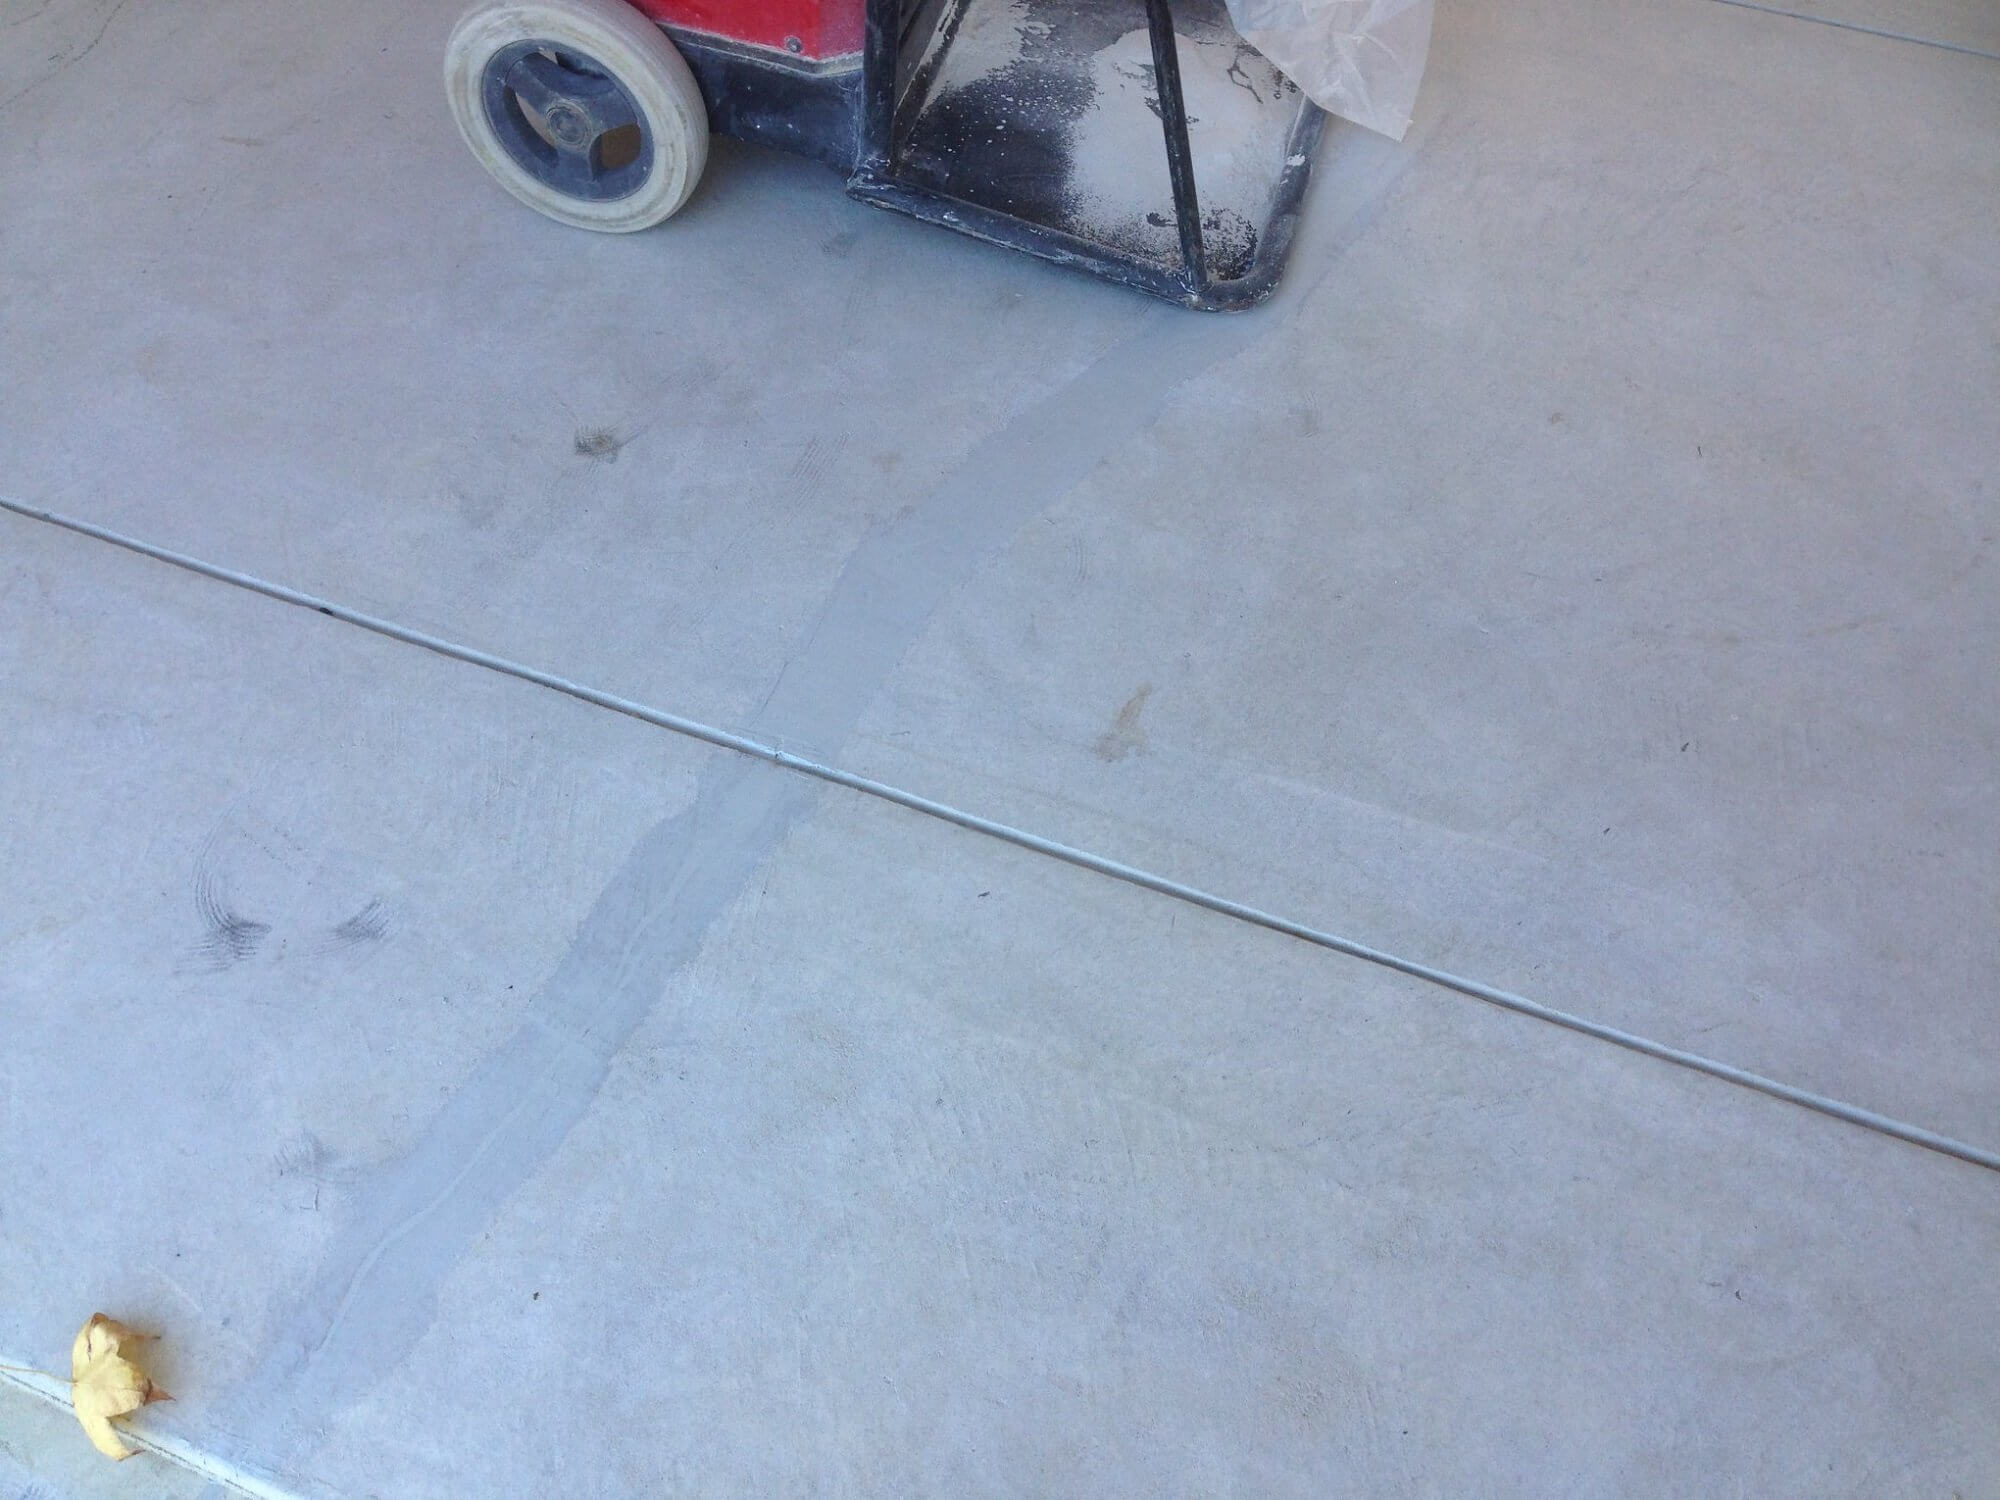 7 Concrete Grinding Fails You Should Avoid and Why